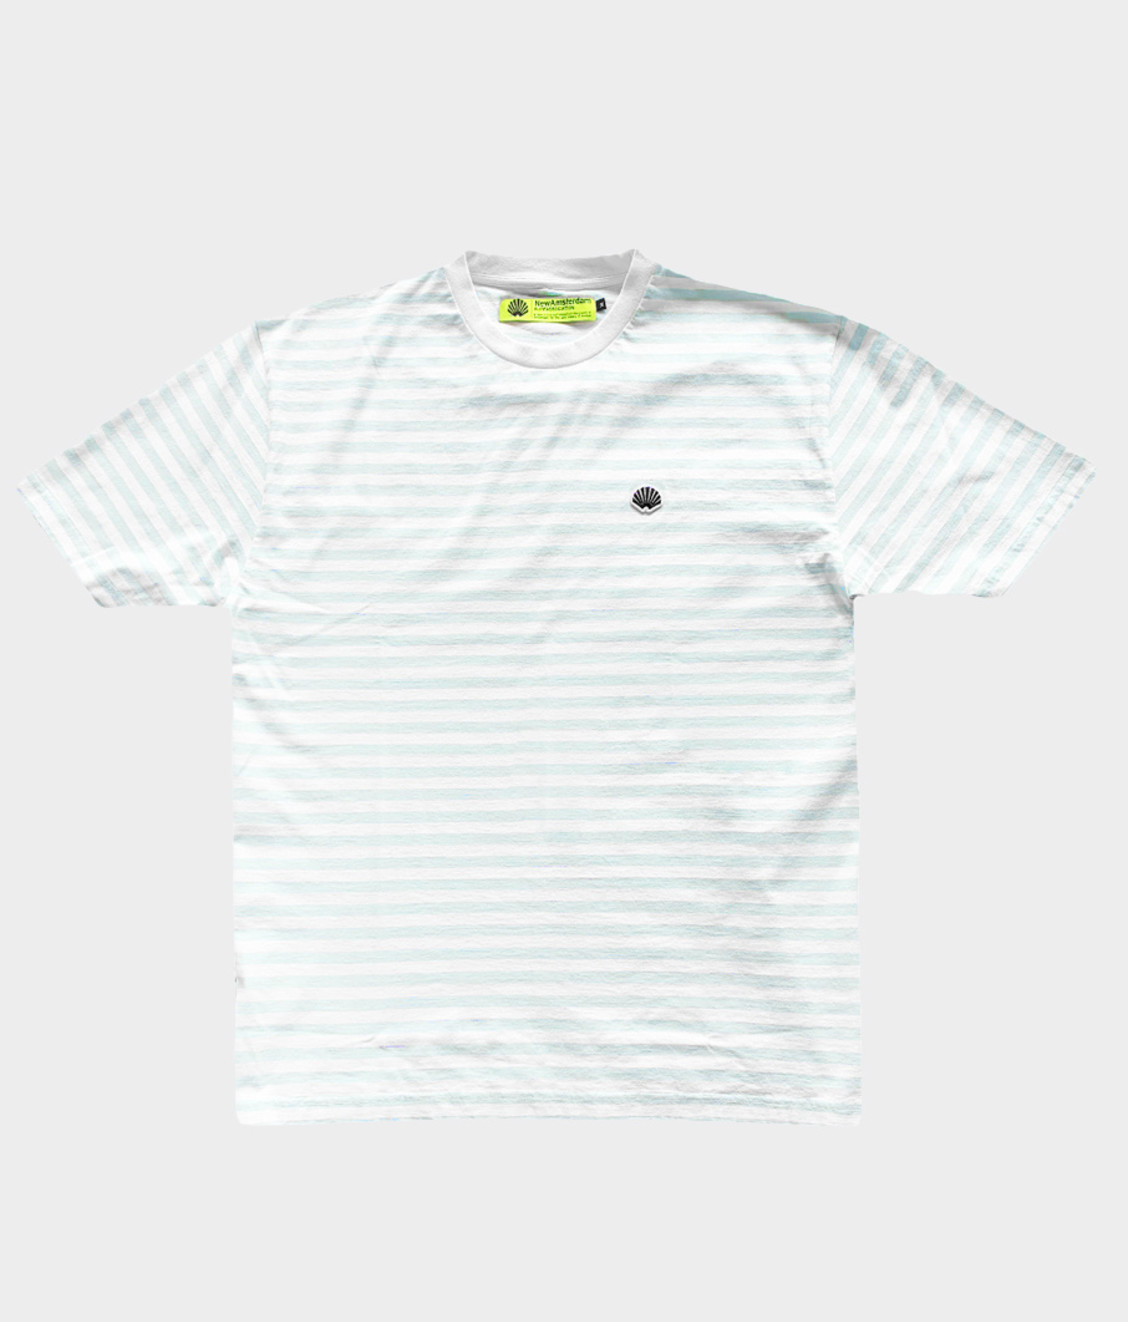 New Amsterdam New Amsterdam Patch Tee White LB